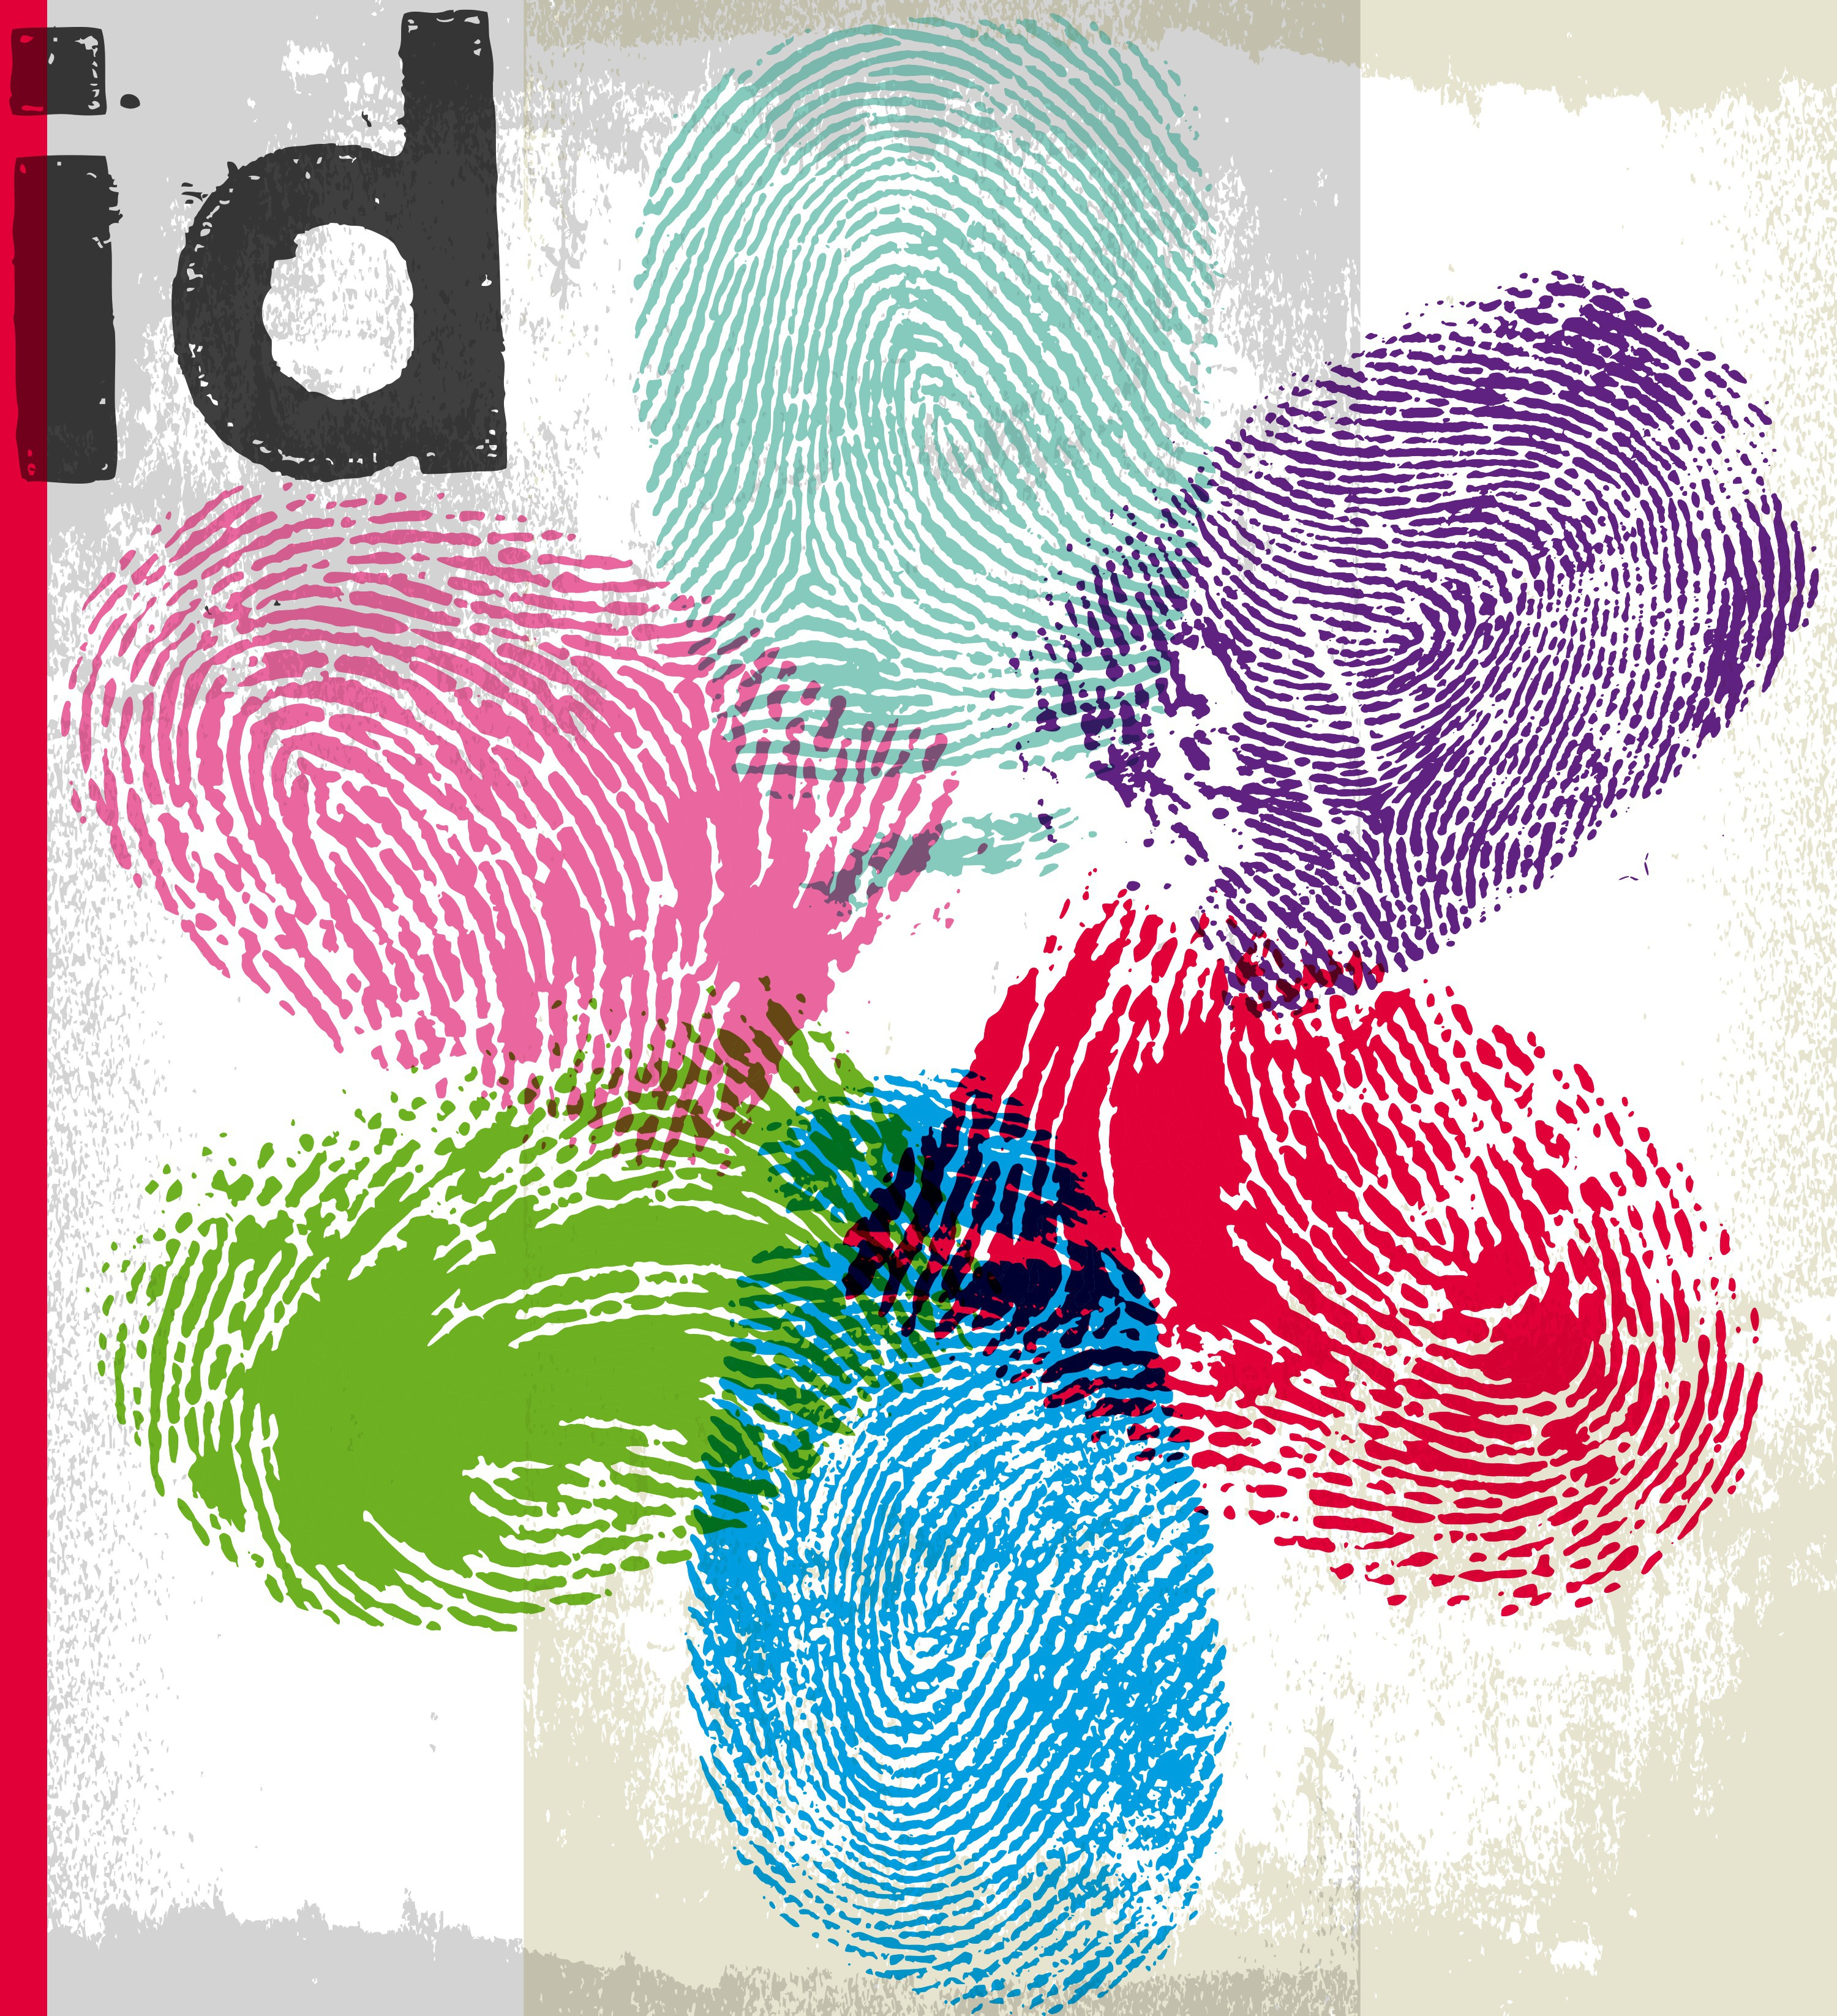 Finger Prints in an Article About the Edward Byrne Memorial Justice Assistance Grant